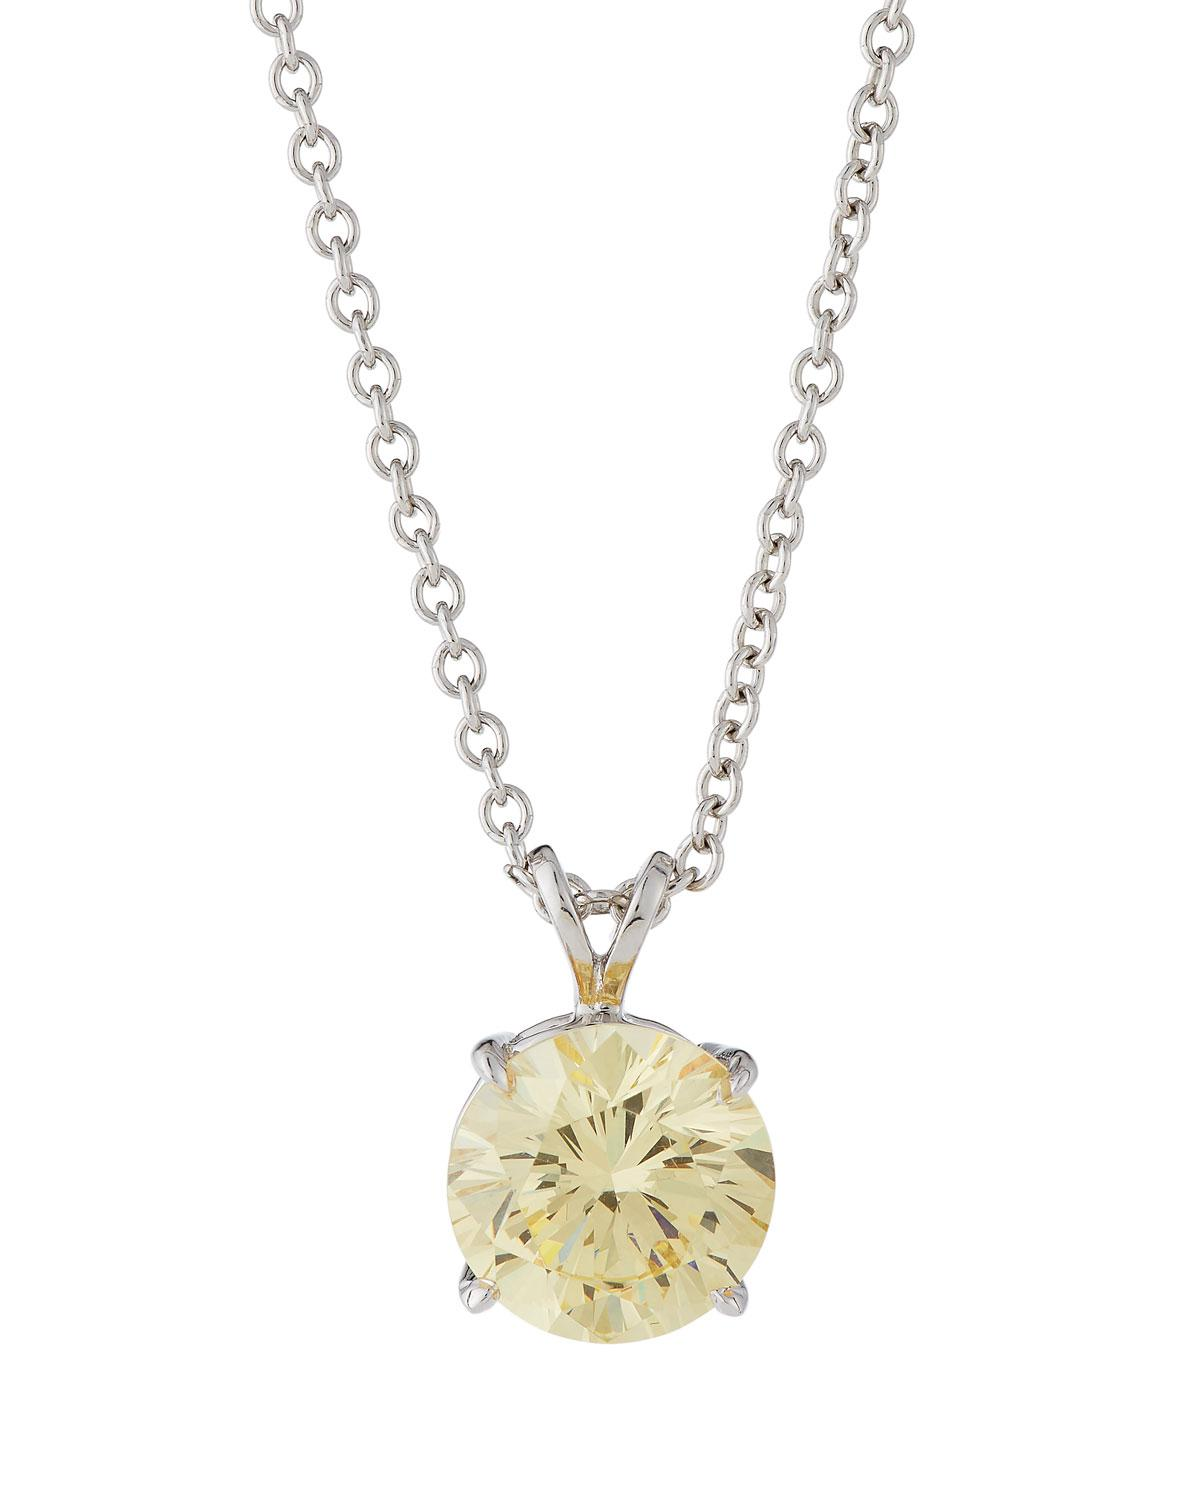 Fantasia Canary & White CZ Crystal Pendant Necklace qVmjXQd